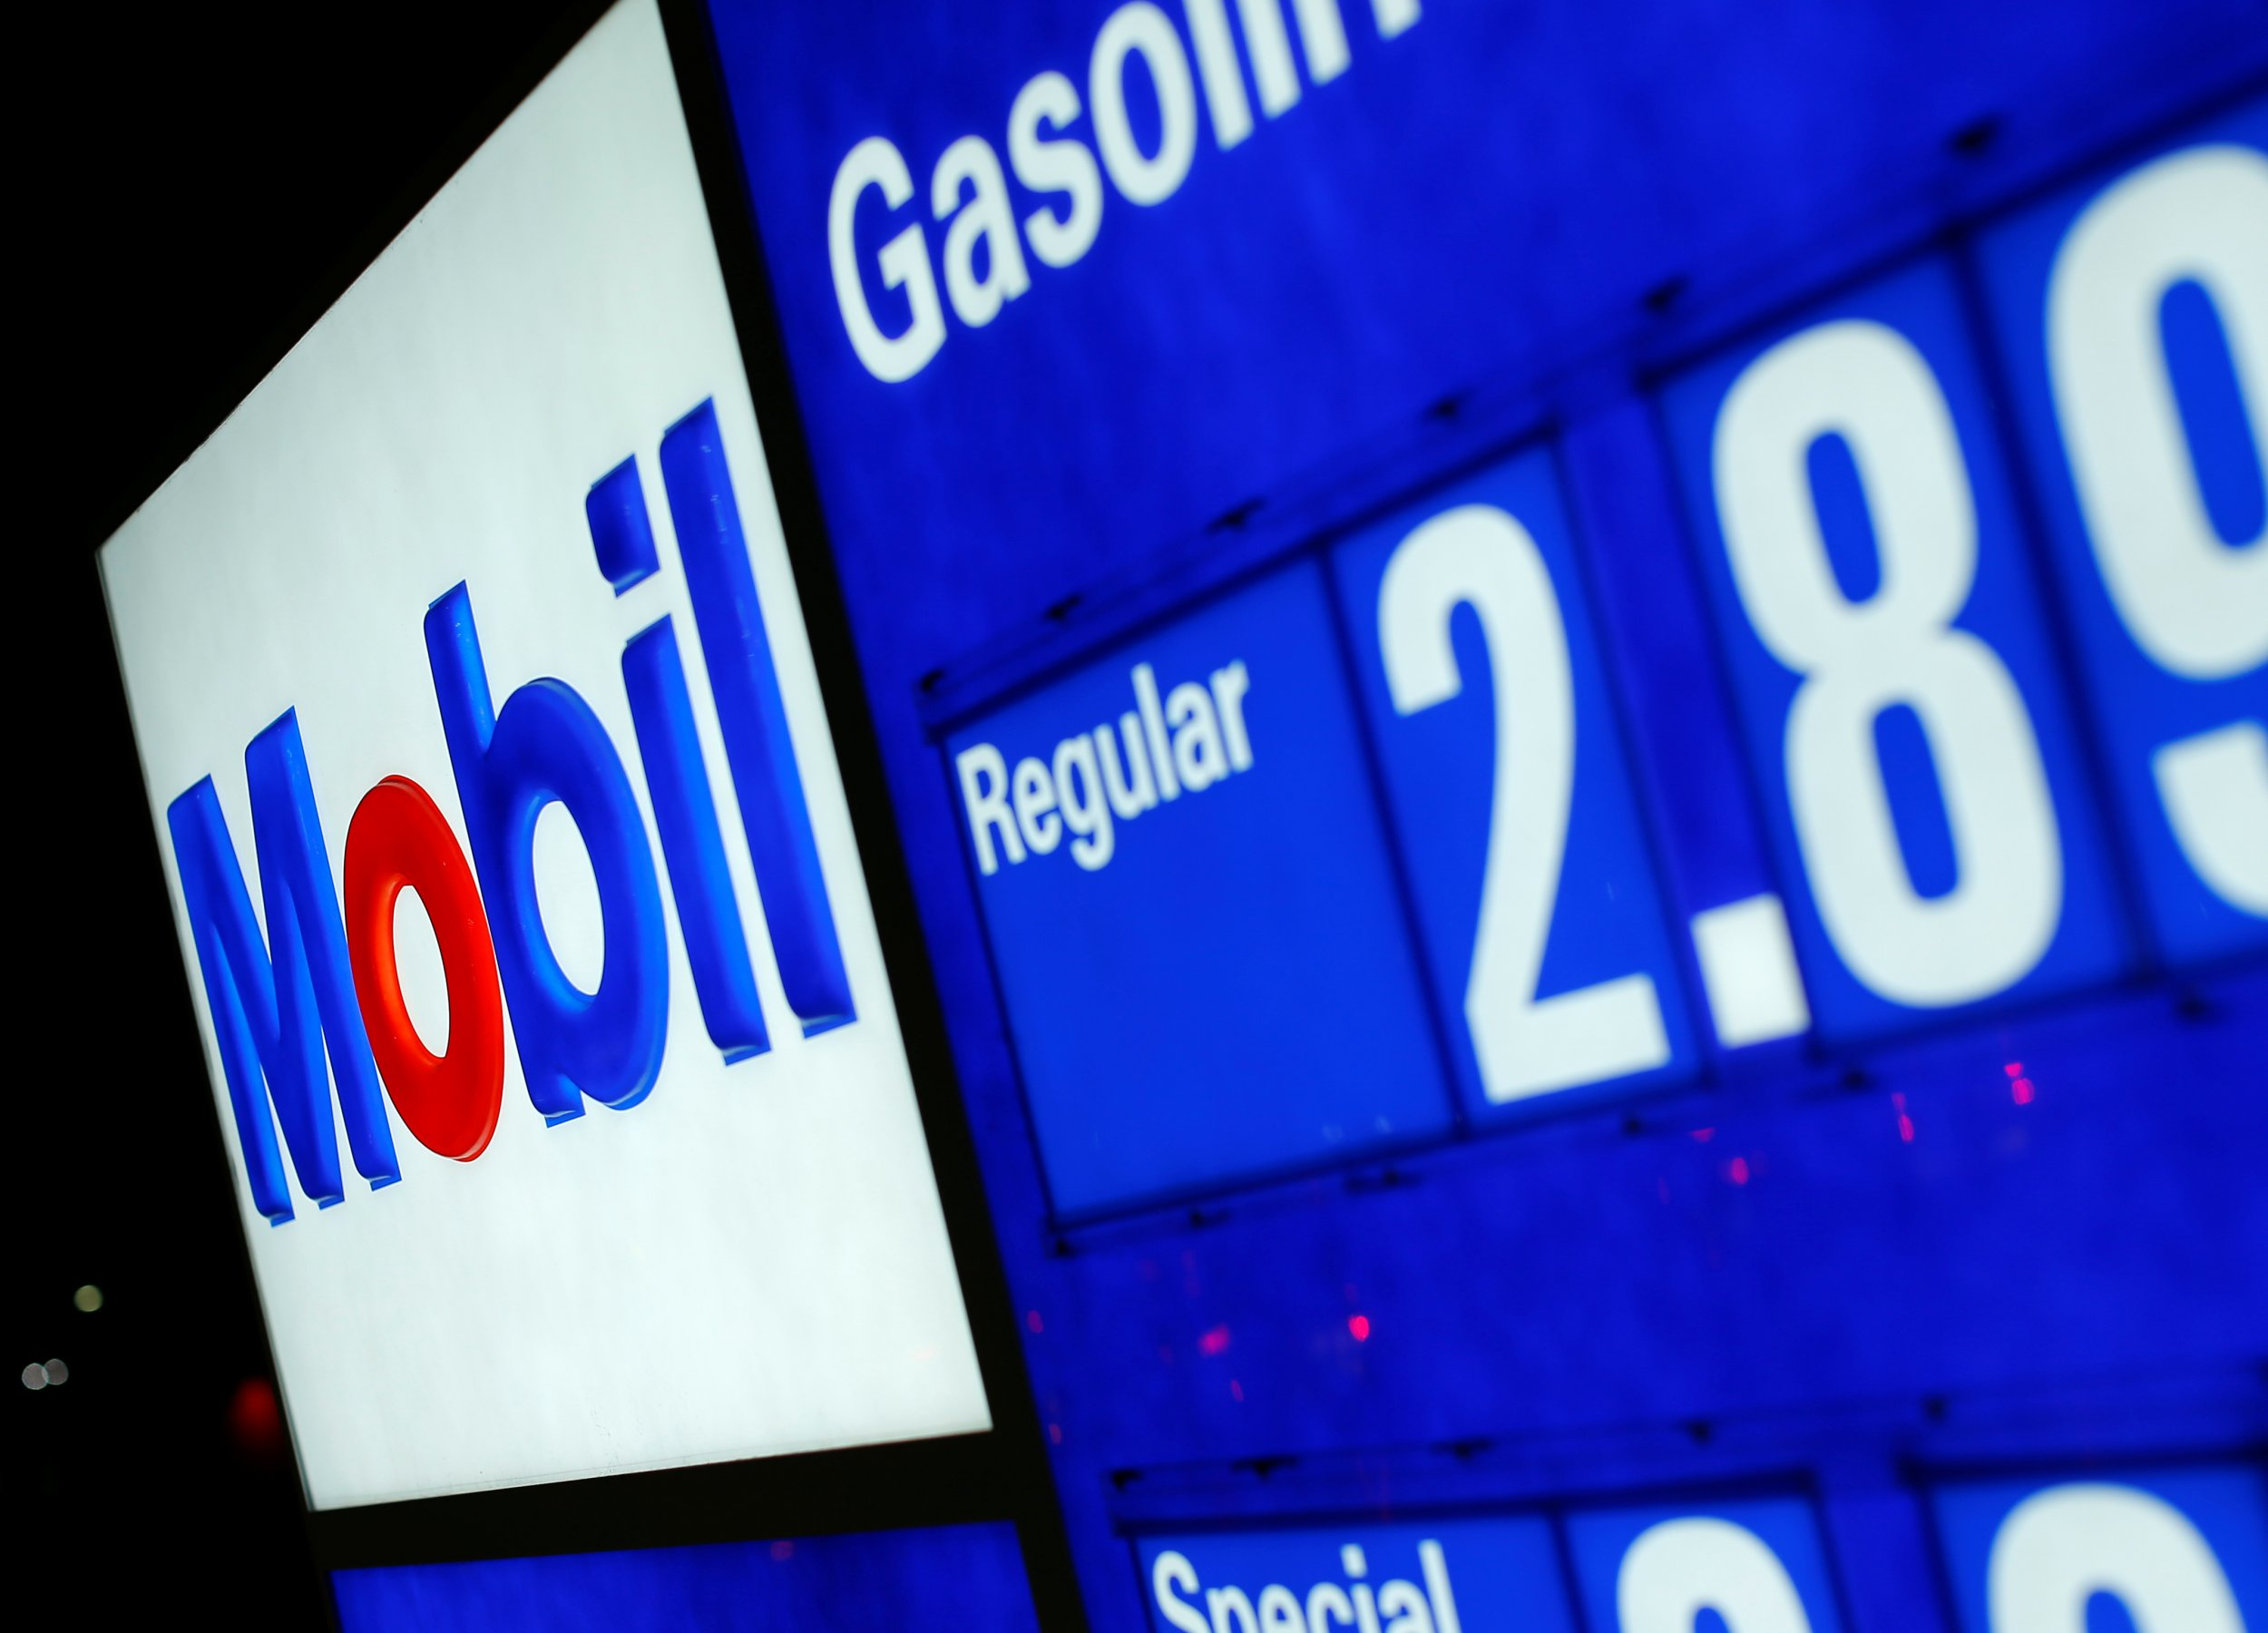 Does Exxon Have a Constitutional Right to Deny Climate Change?